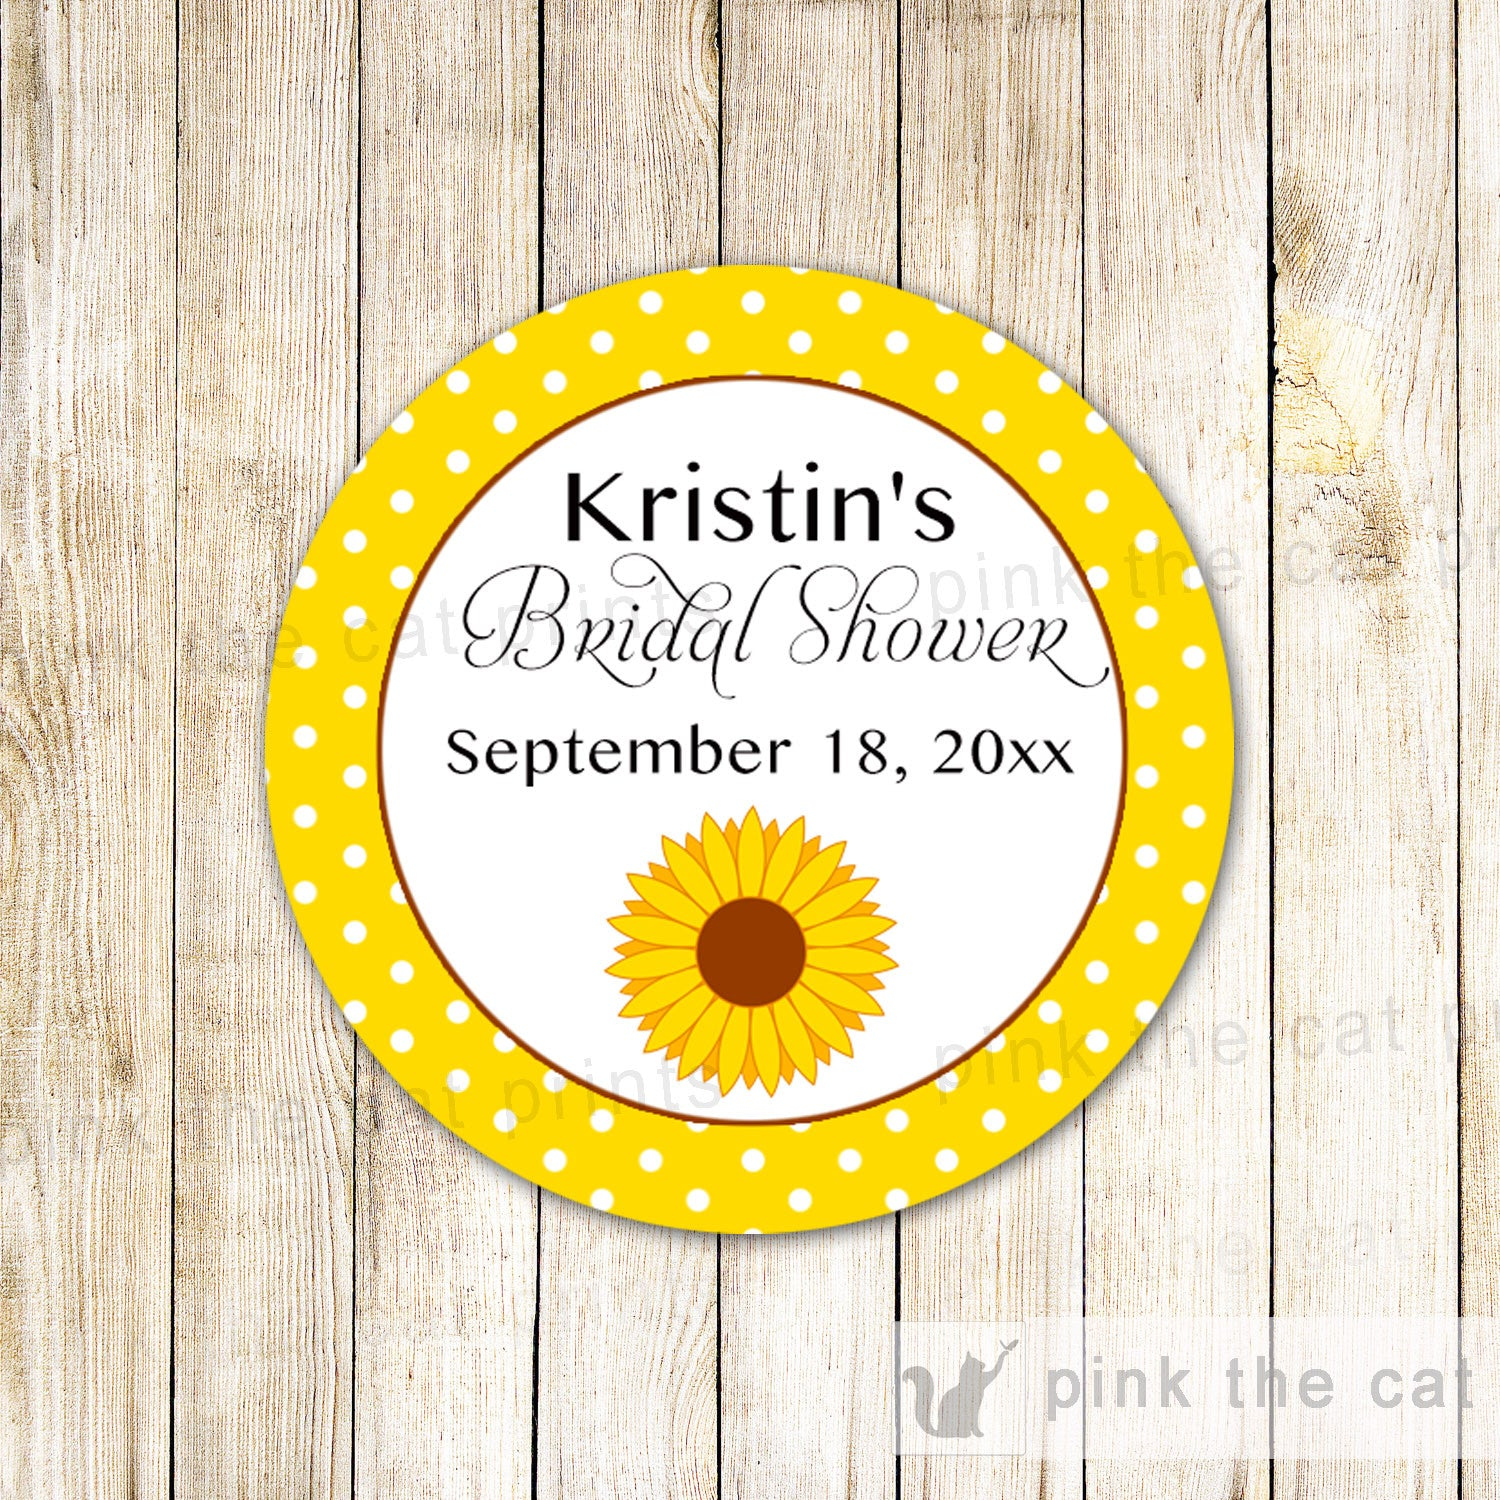 40 Stickers Favor Label Birthday Baby Shower Sunflower – Pink The Cat